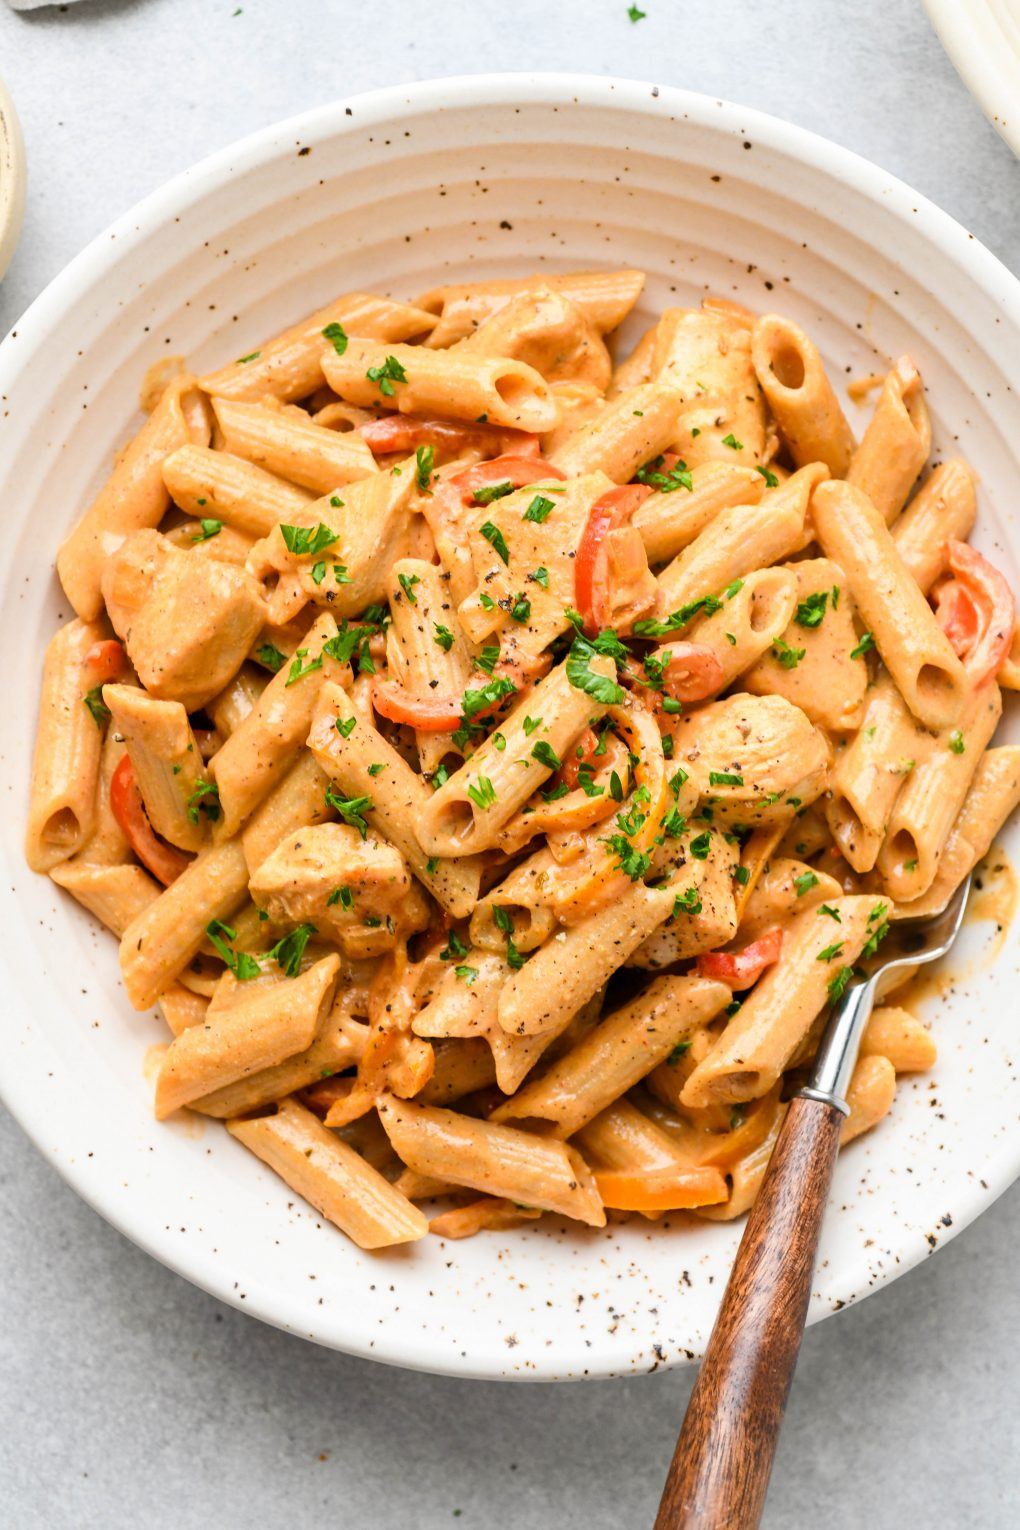 Large speckled shallow bowl filled with creamy cajun chicken penne pasta. Topped with a sprinkle of parsley and a wooden handled fork tucked into the side of the bowl.